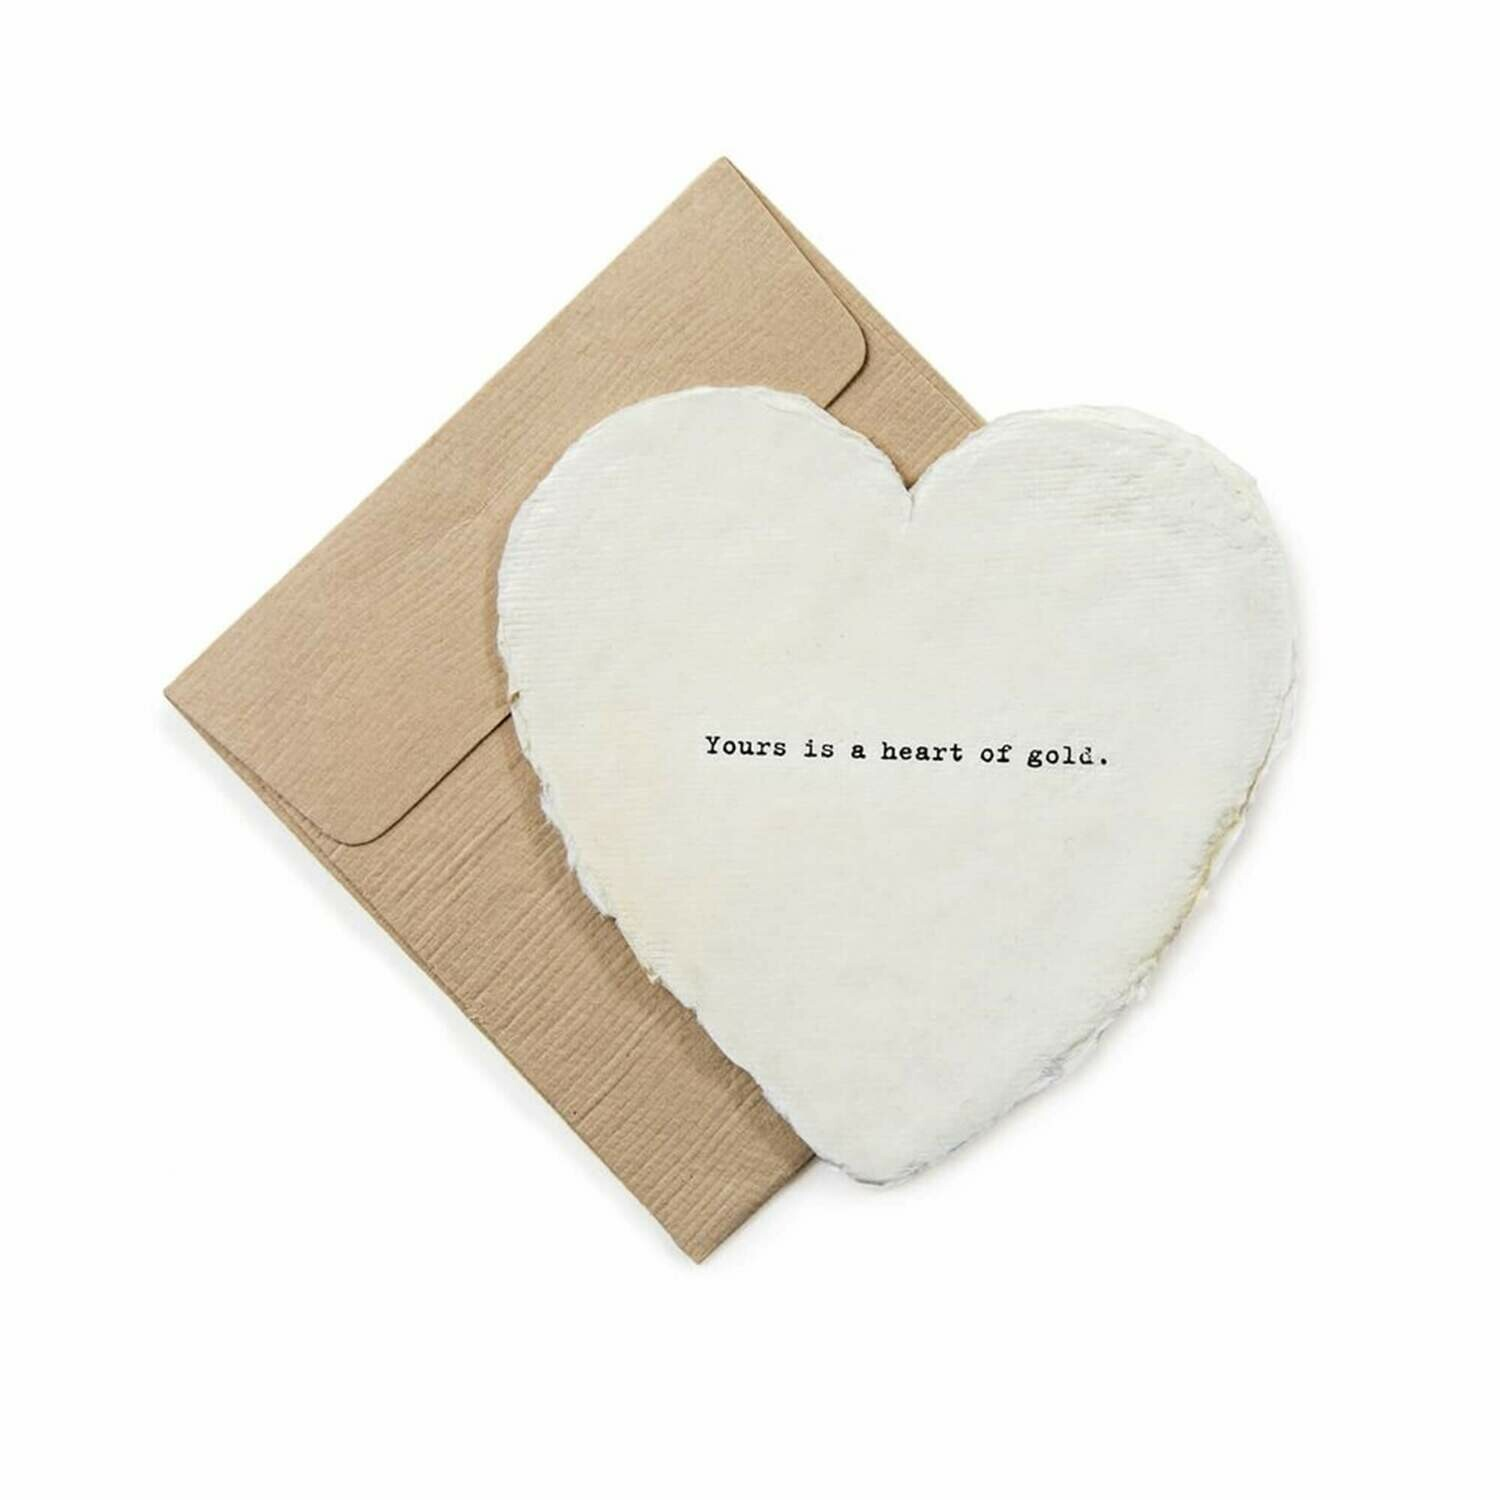 Mini Heart Shaped Card & Envelope-Yours is a heart of gold